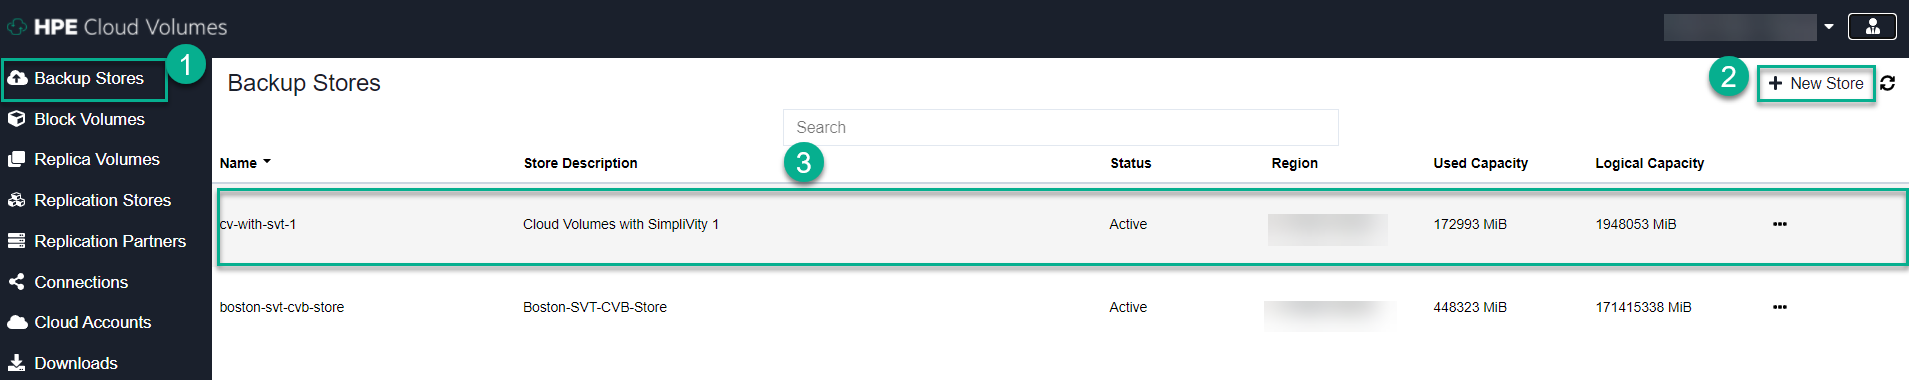 HPE Cloud Volumes Portal showing Backup Stores